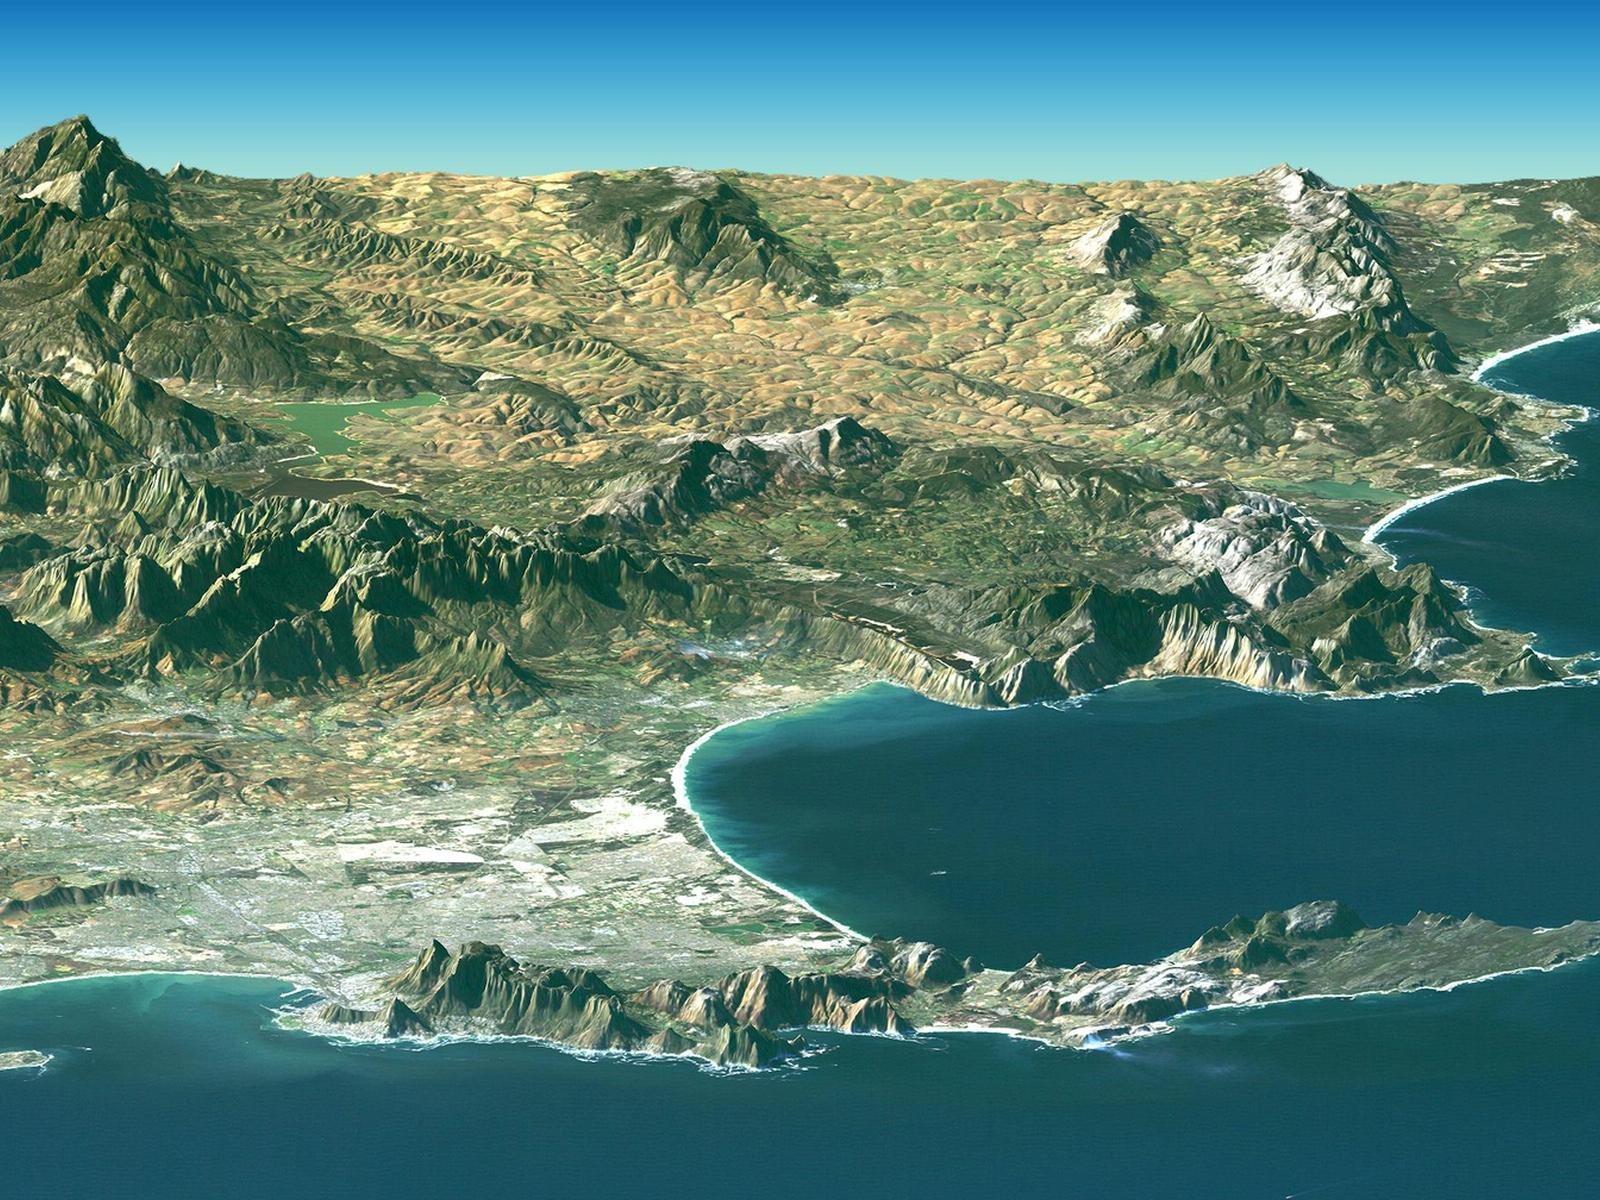 Landsat Image of Cape Town, South Africa